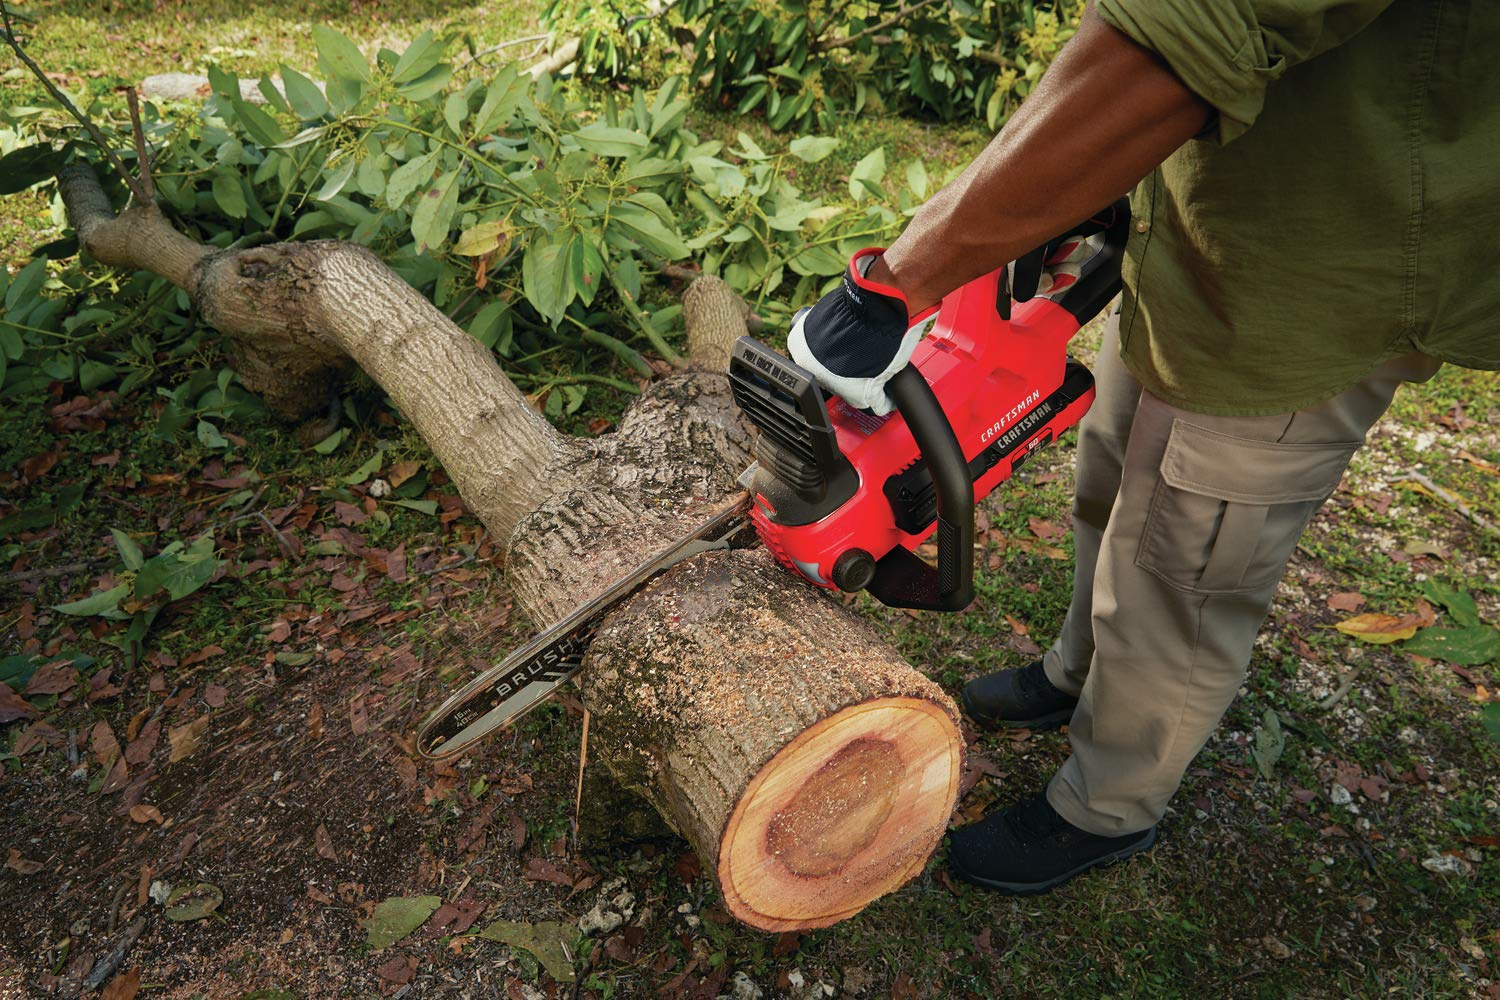 Craftsman CMCCS660E1 Chainsaws product image 10